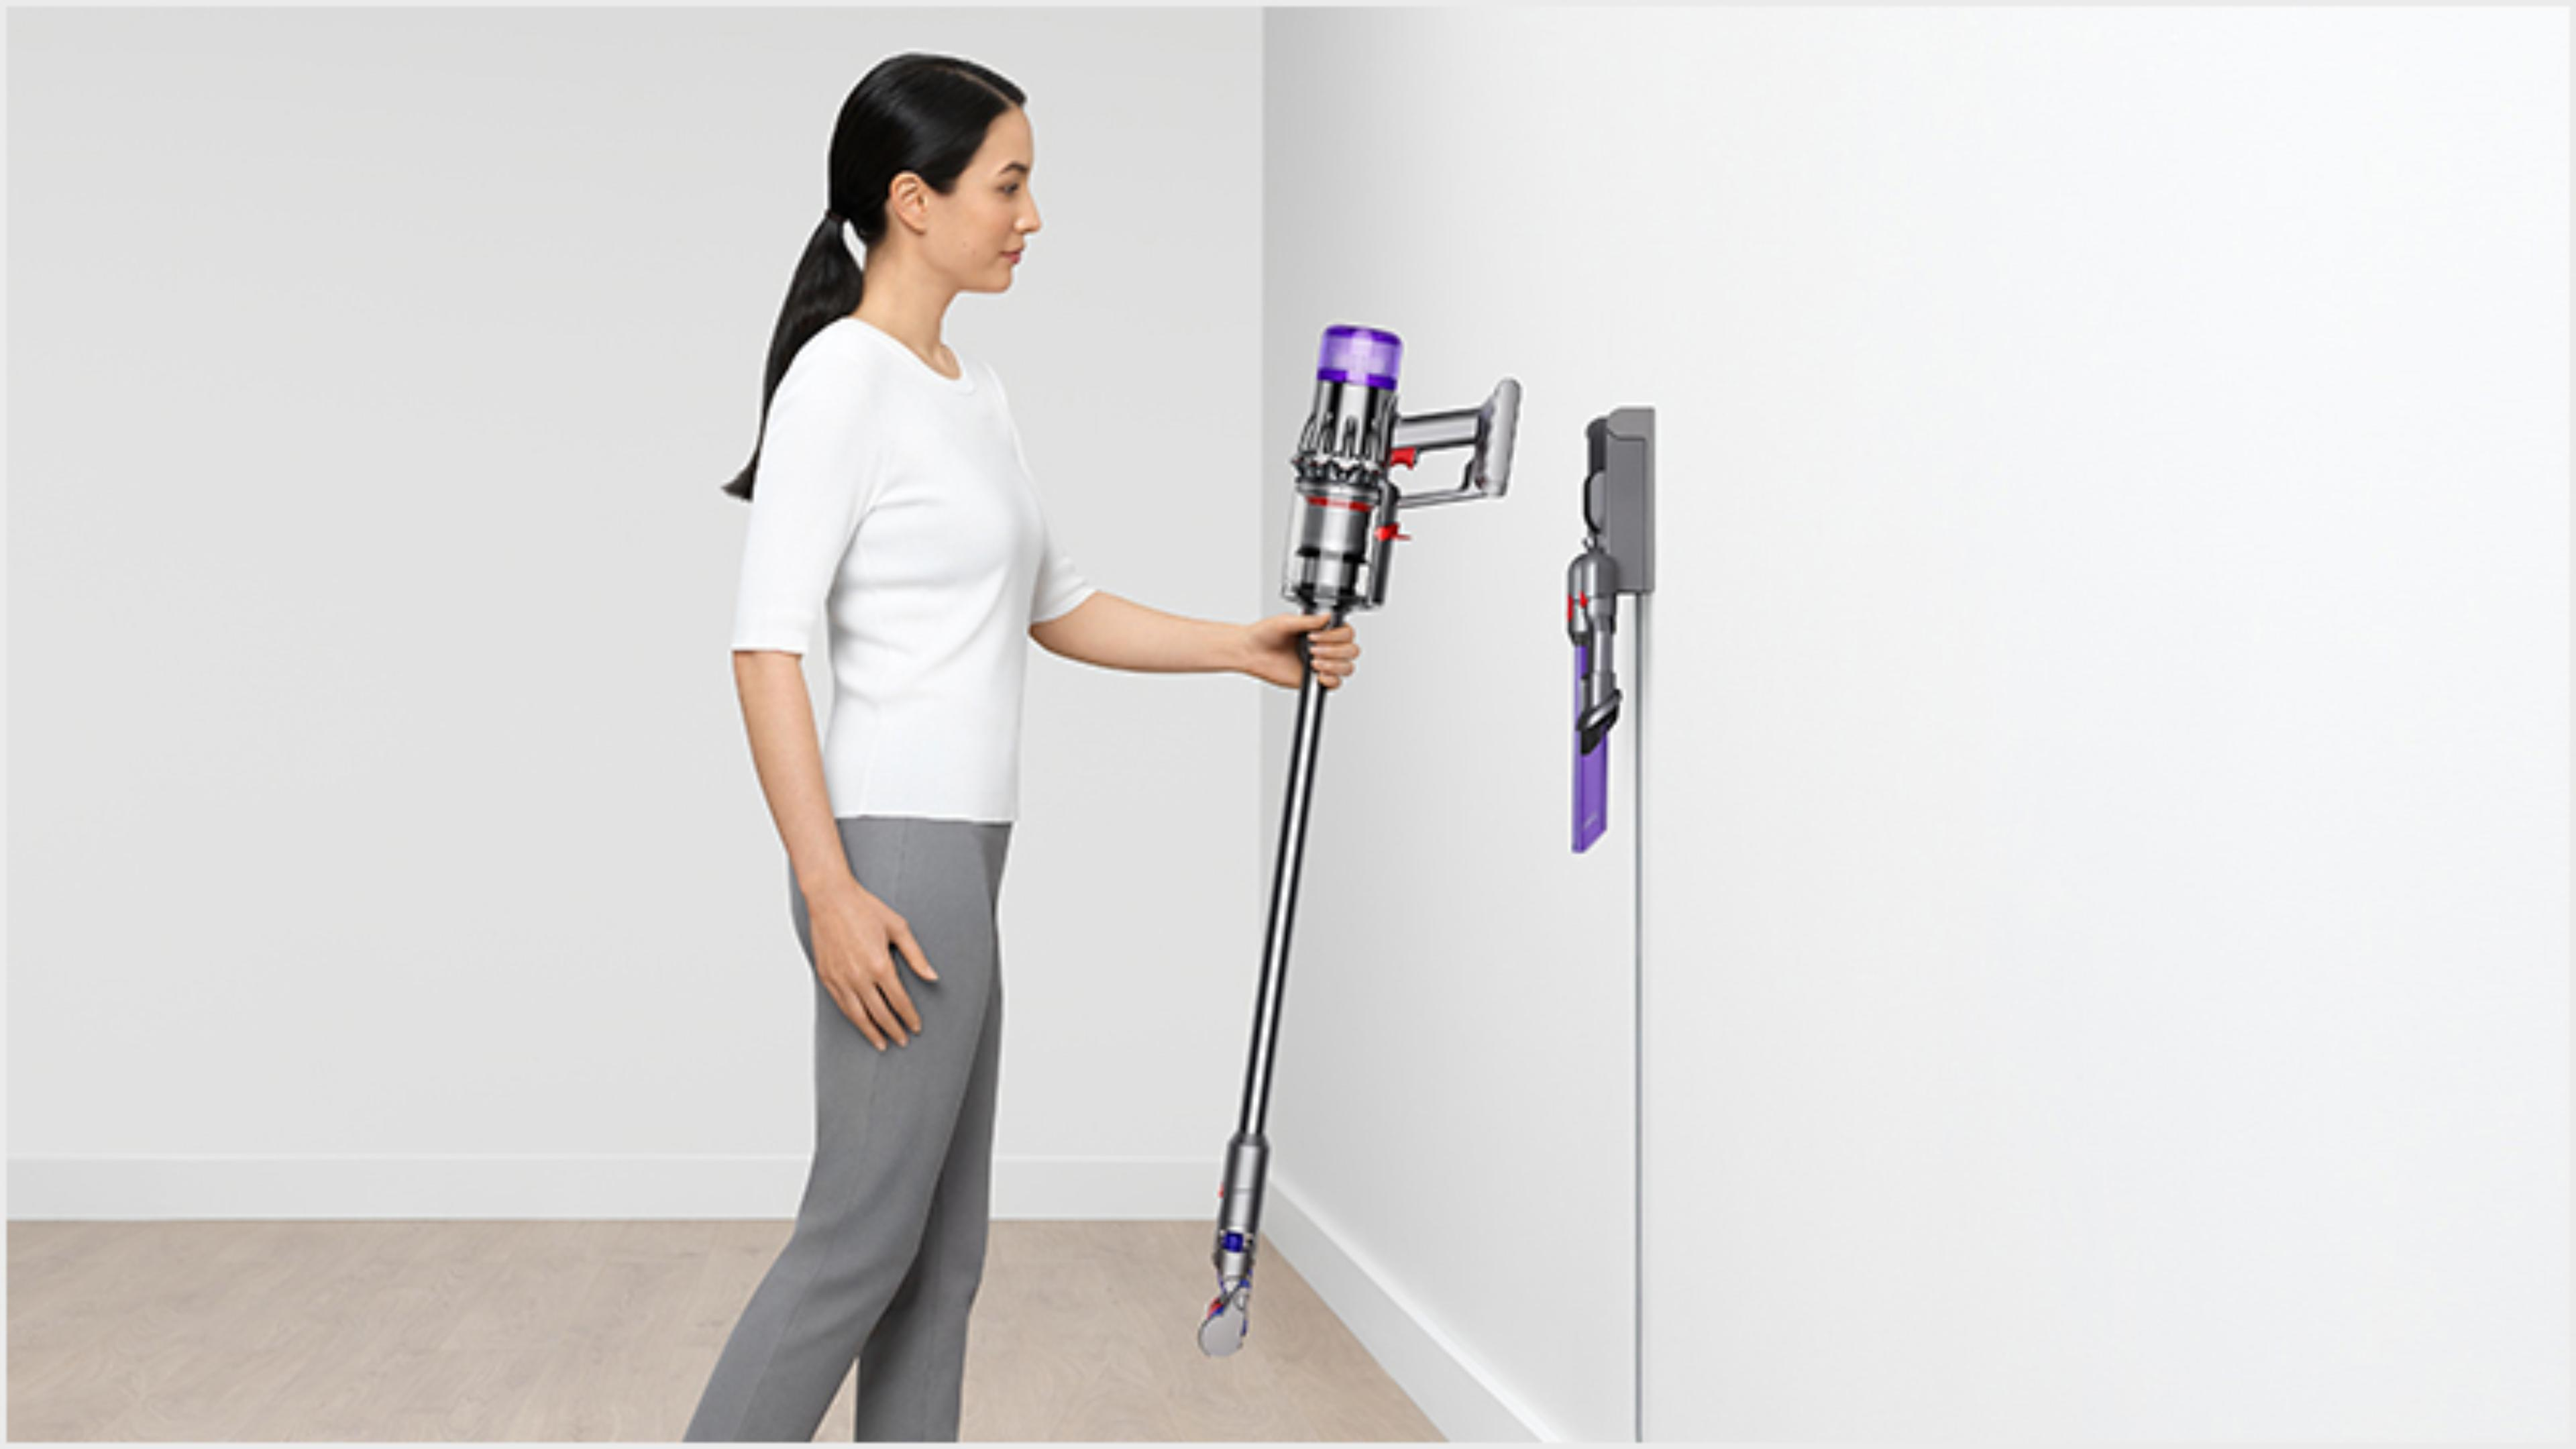 Woman dropping the Dyson Digital Slim vacuum into the wall dock